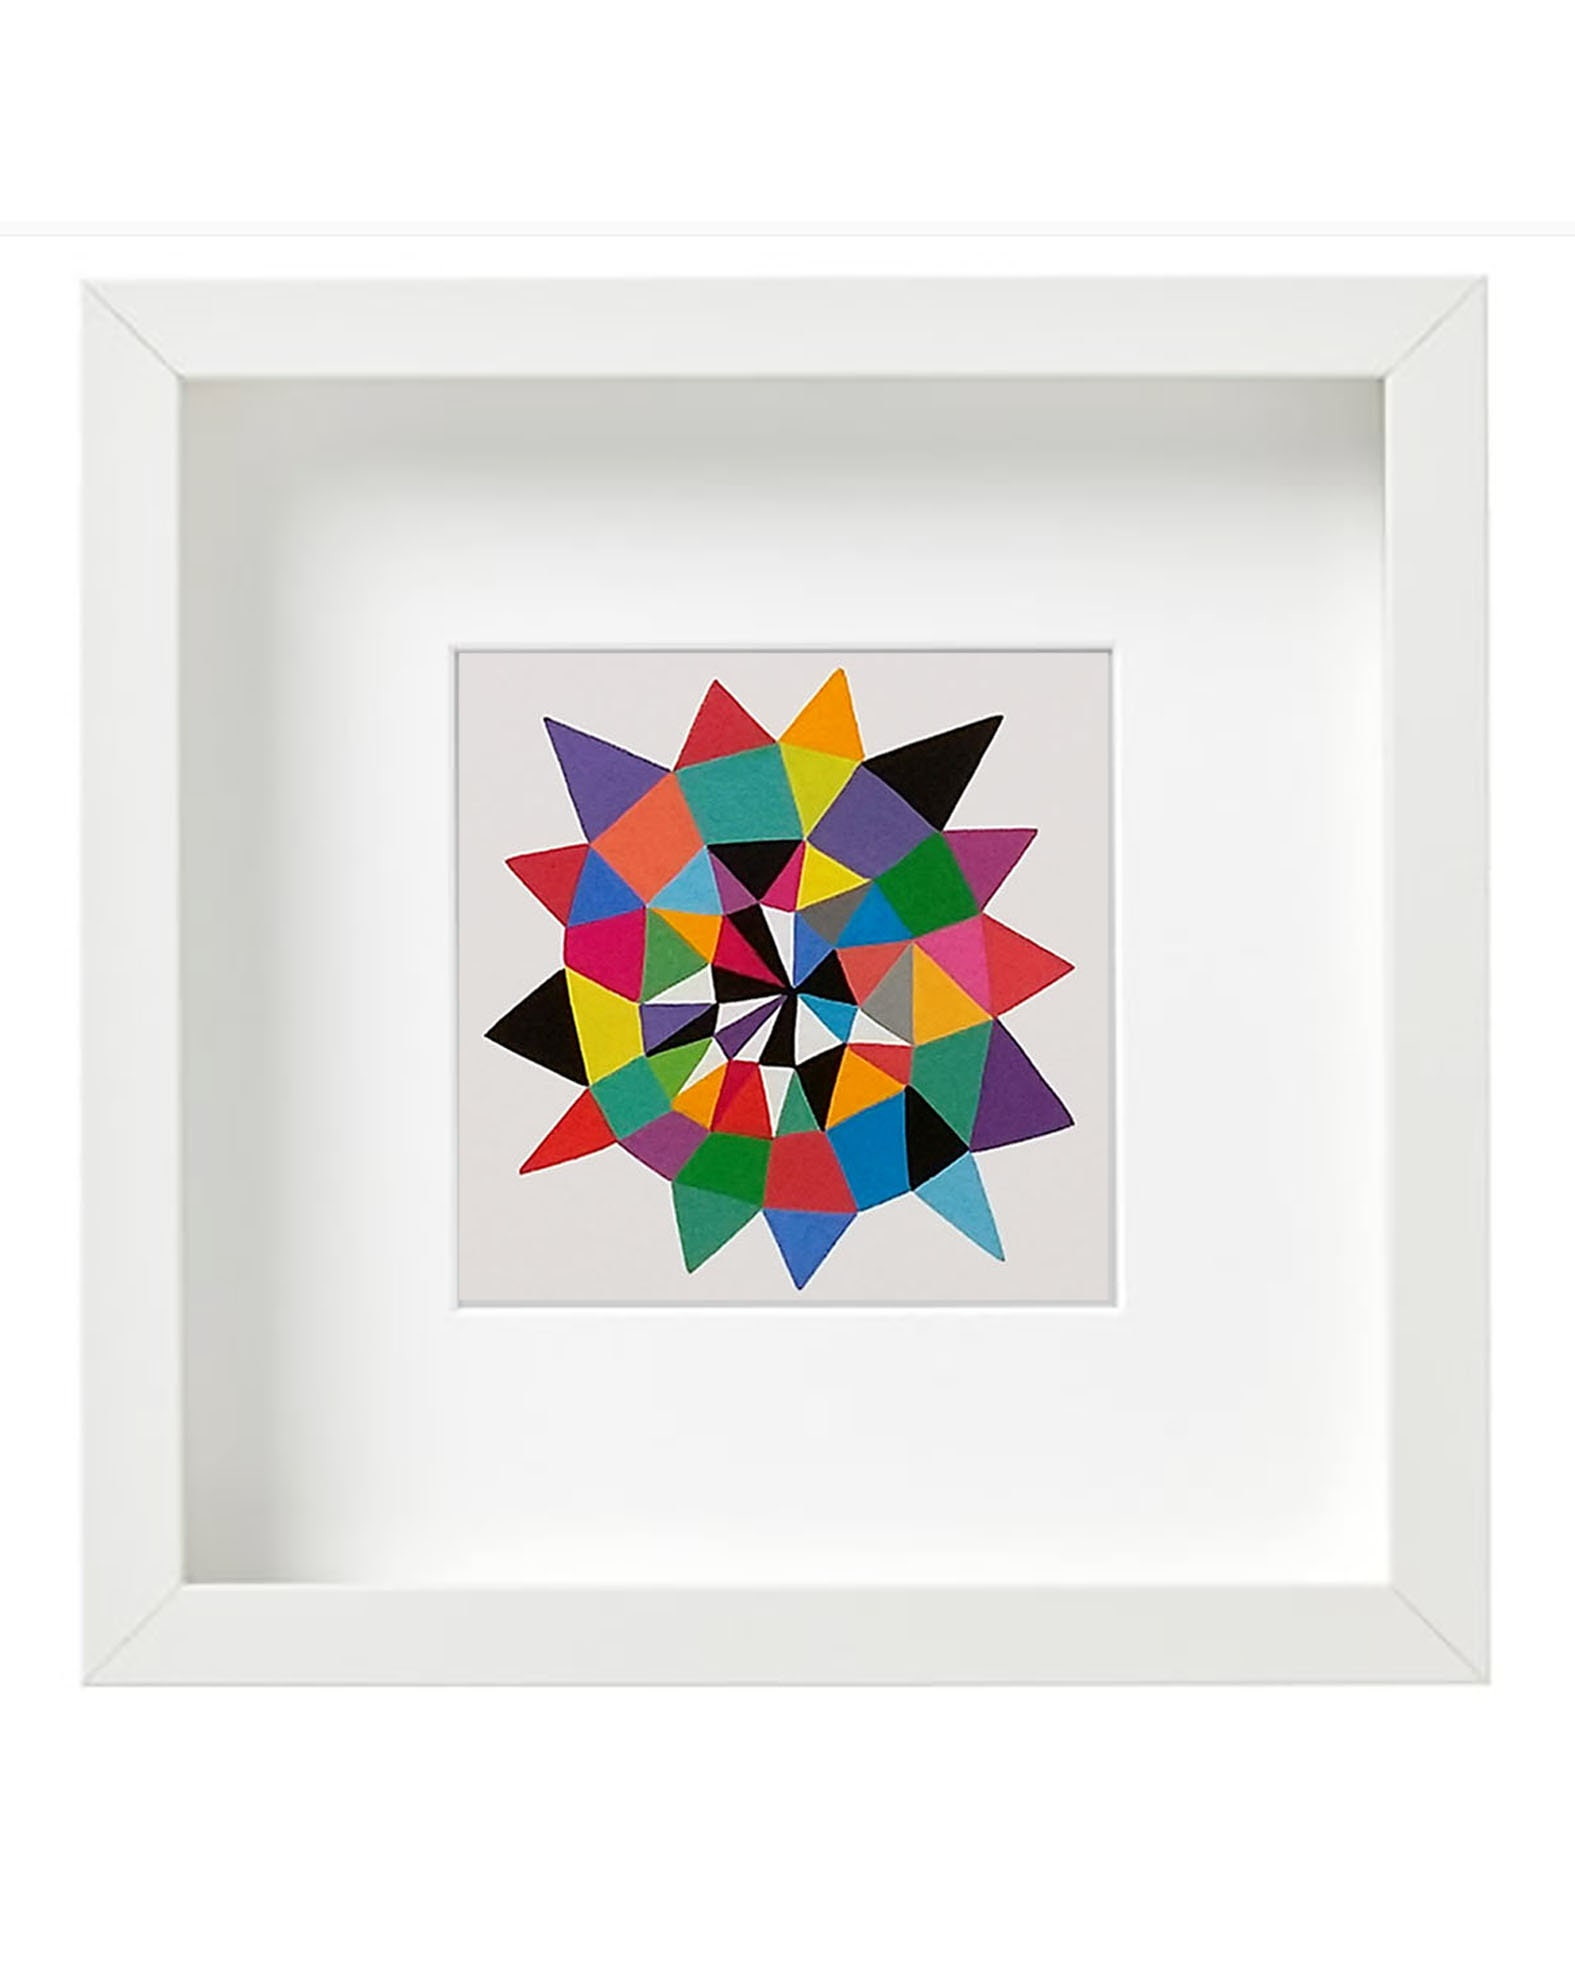 Star_008, small geometric art on paper - product images  of